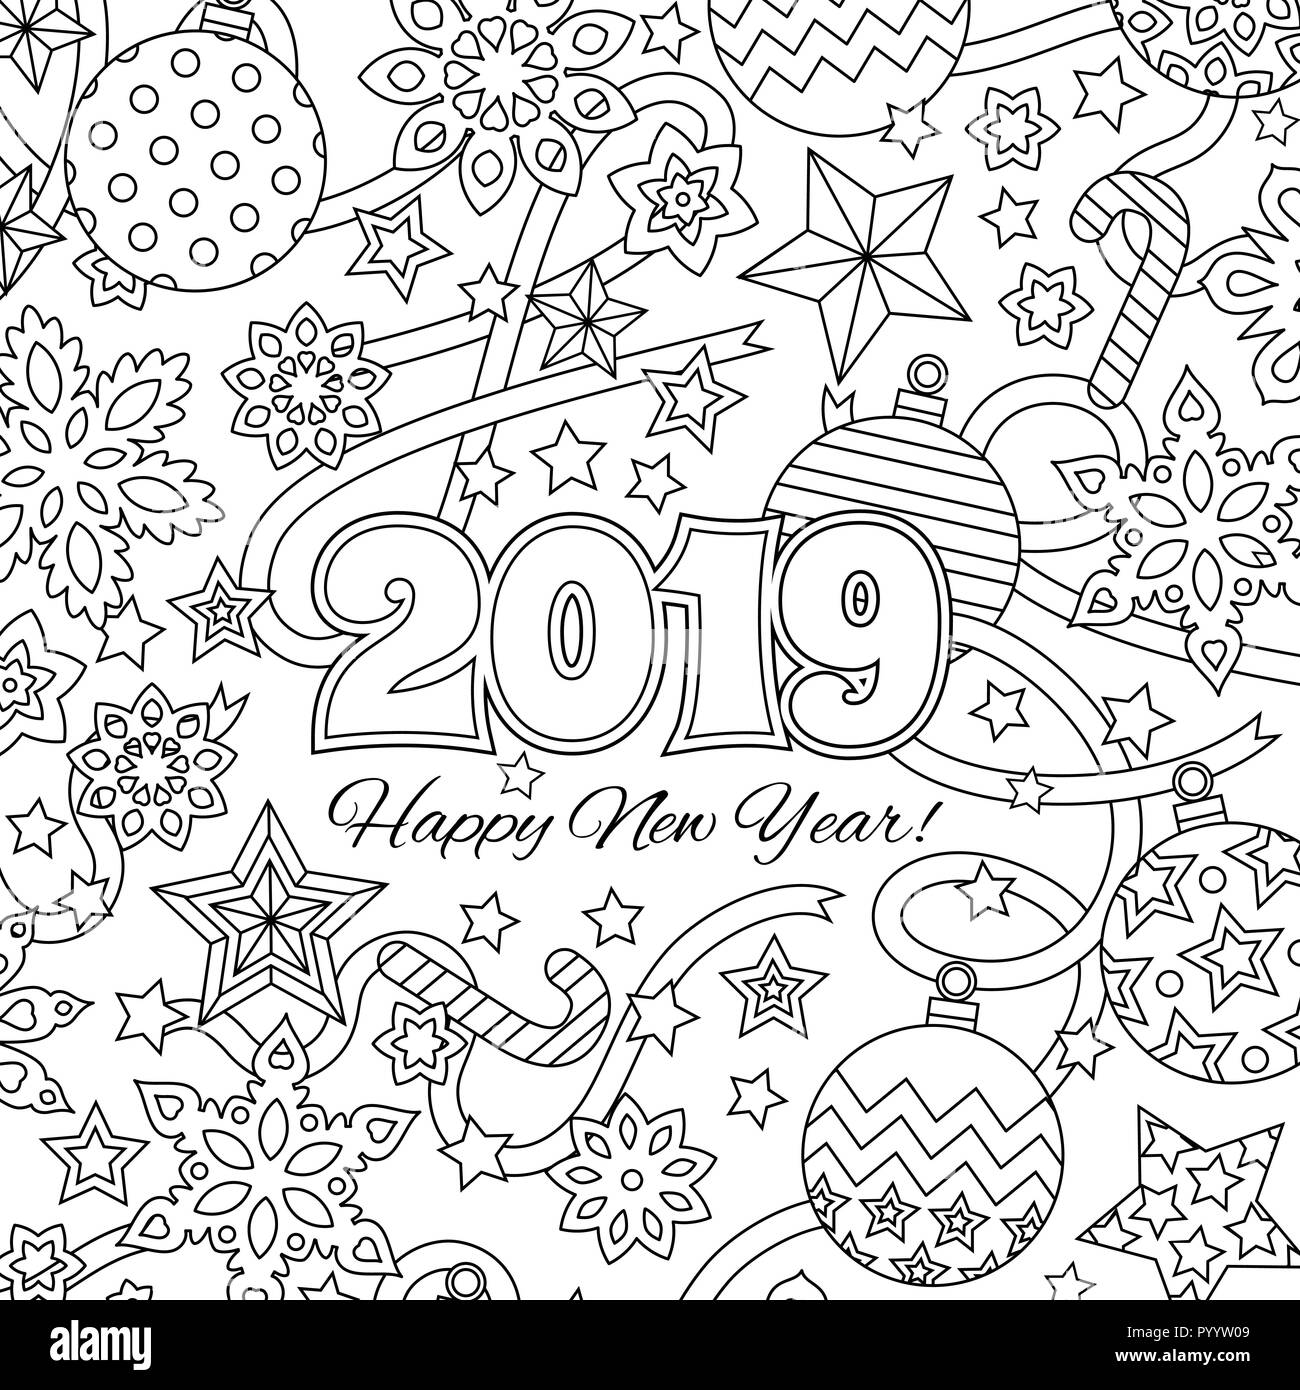 New Year Congratulation Card With Numbers 2019 And Festive